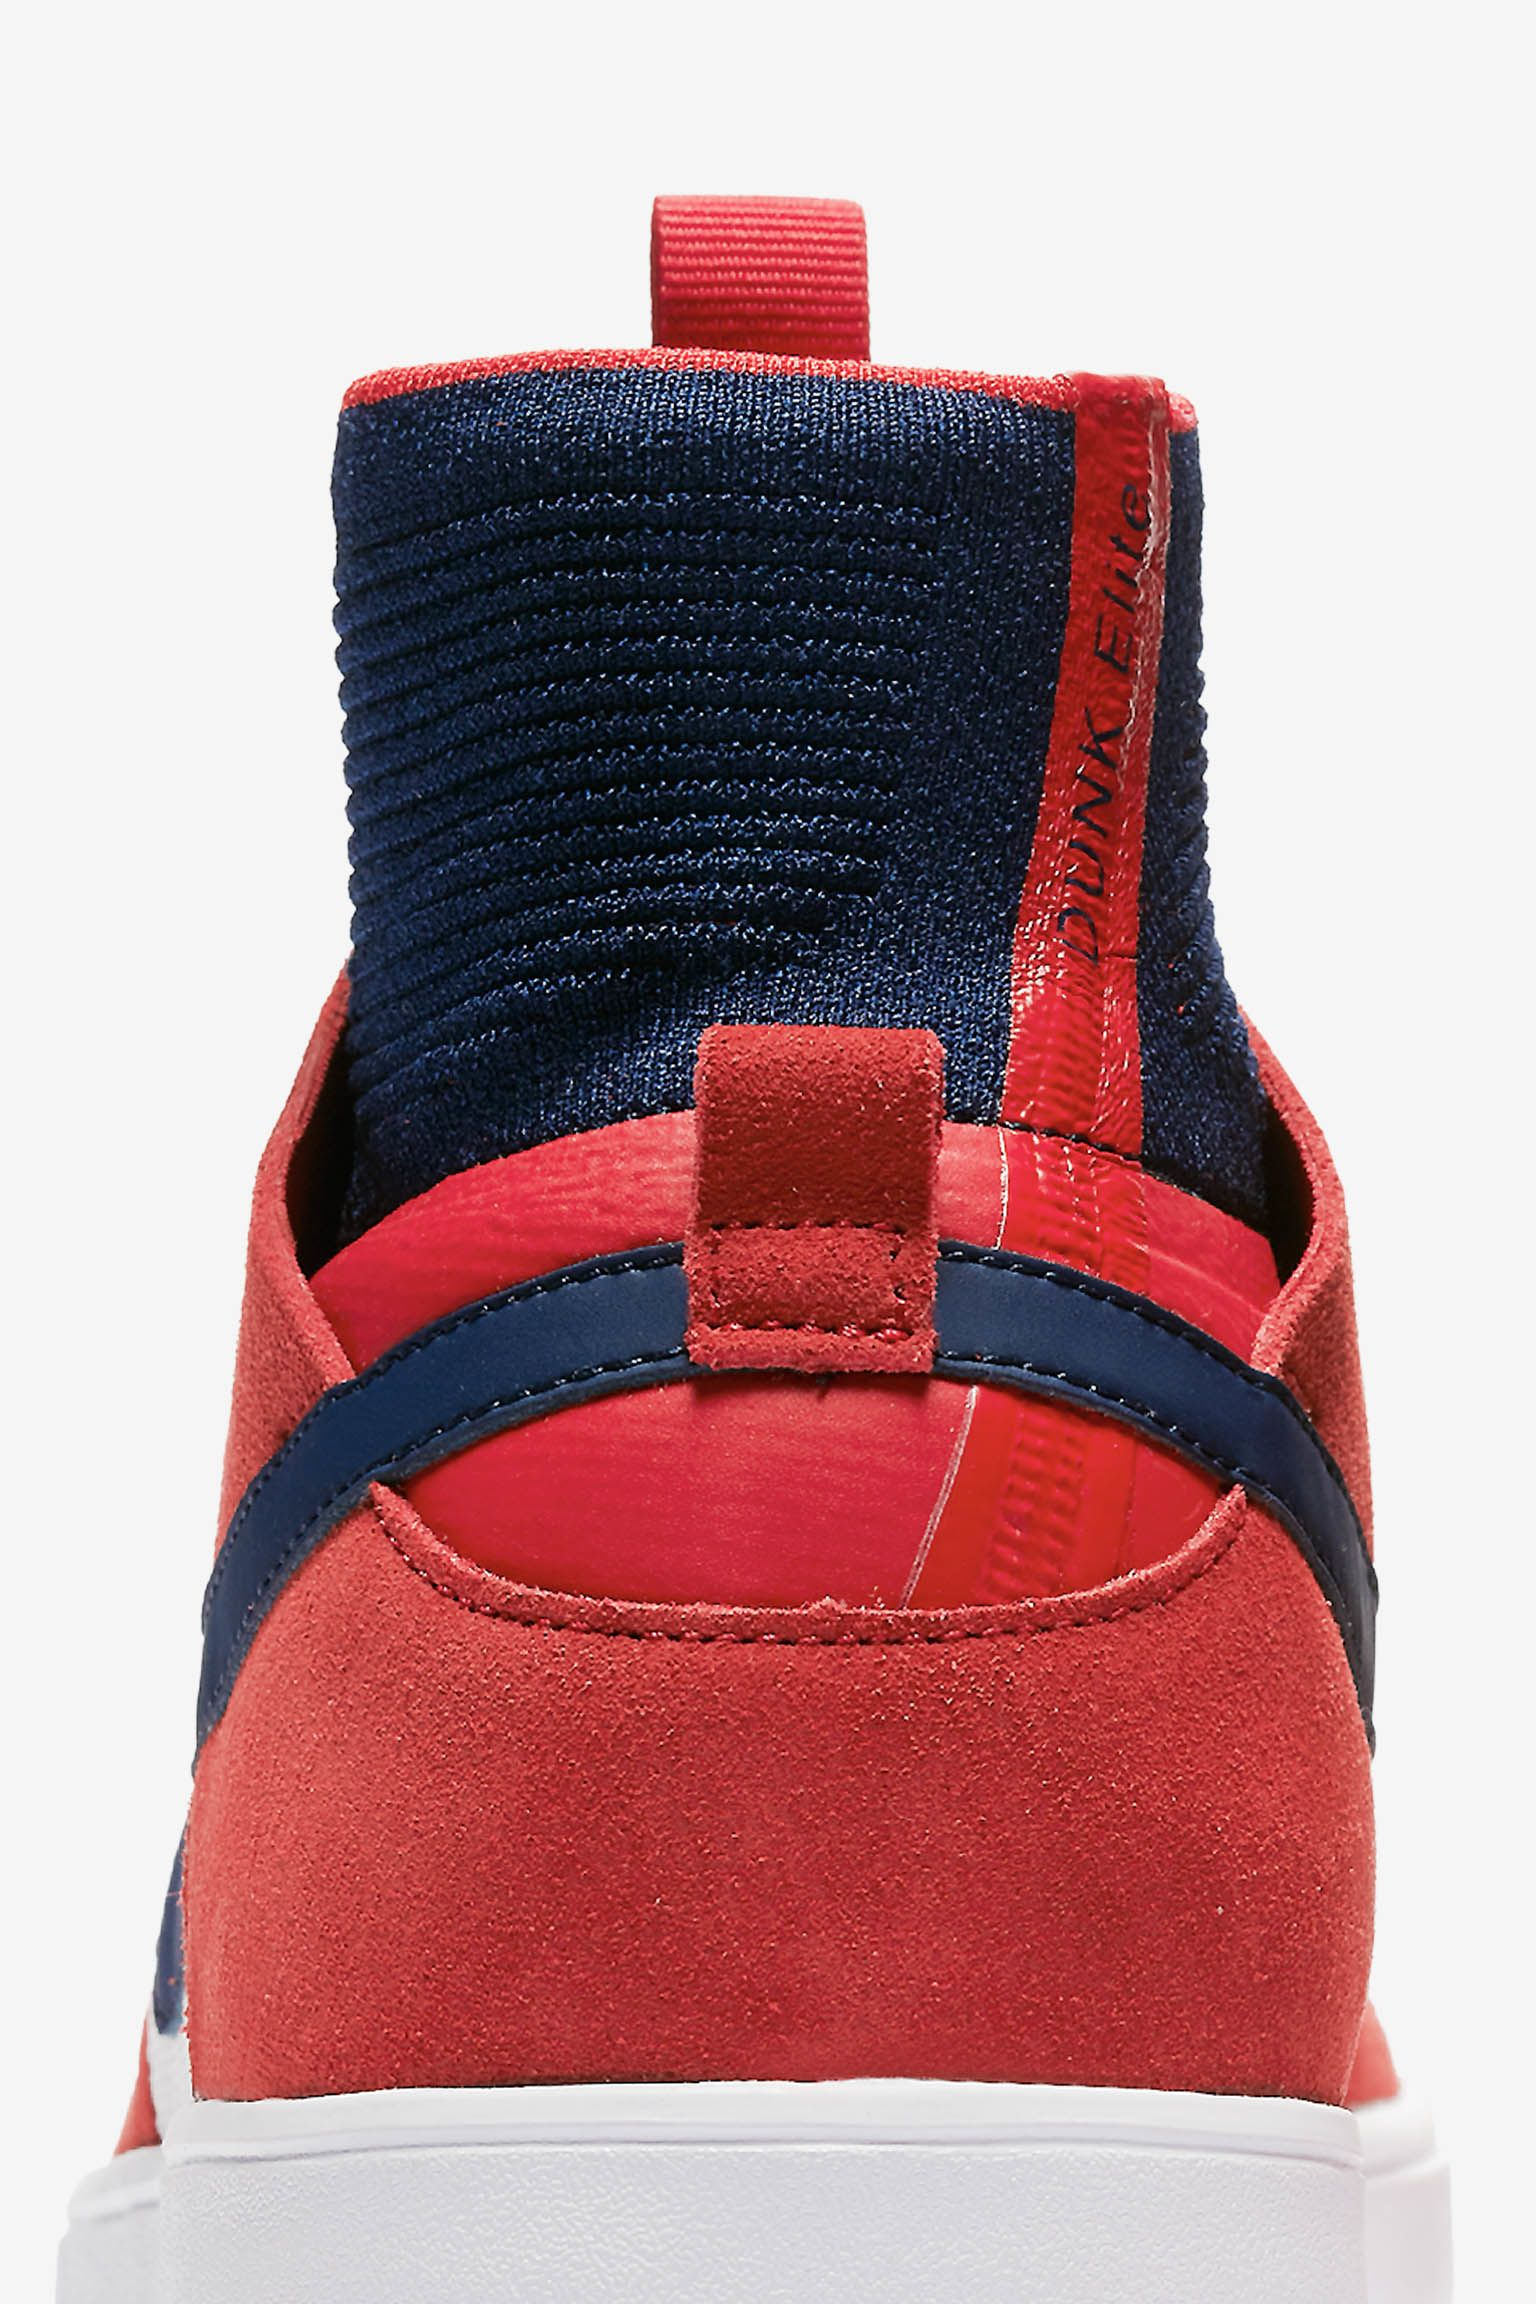 Nike SB Dunk High Elite QS 'University Red & College Navy' Release Date.